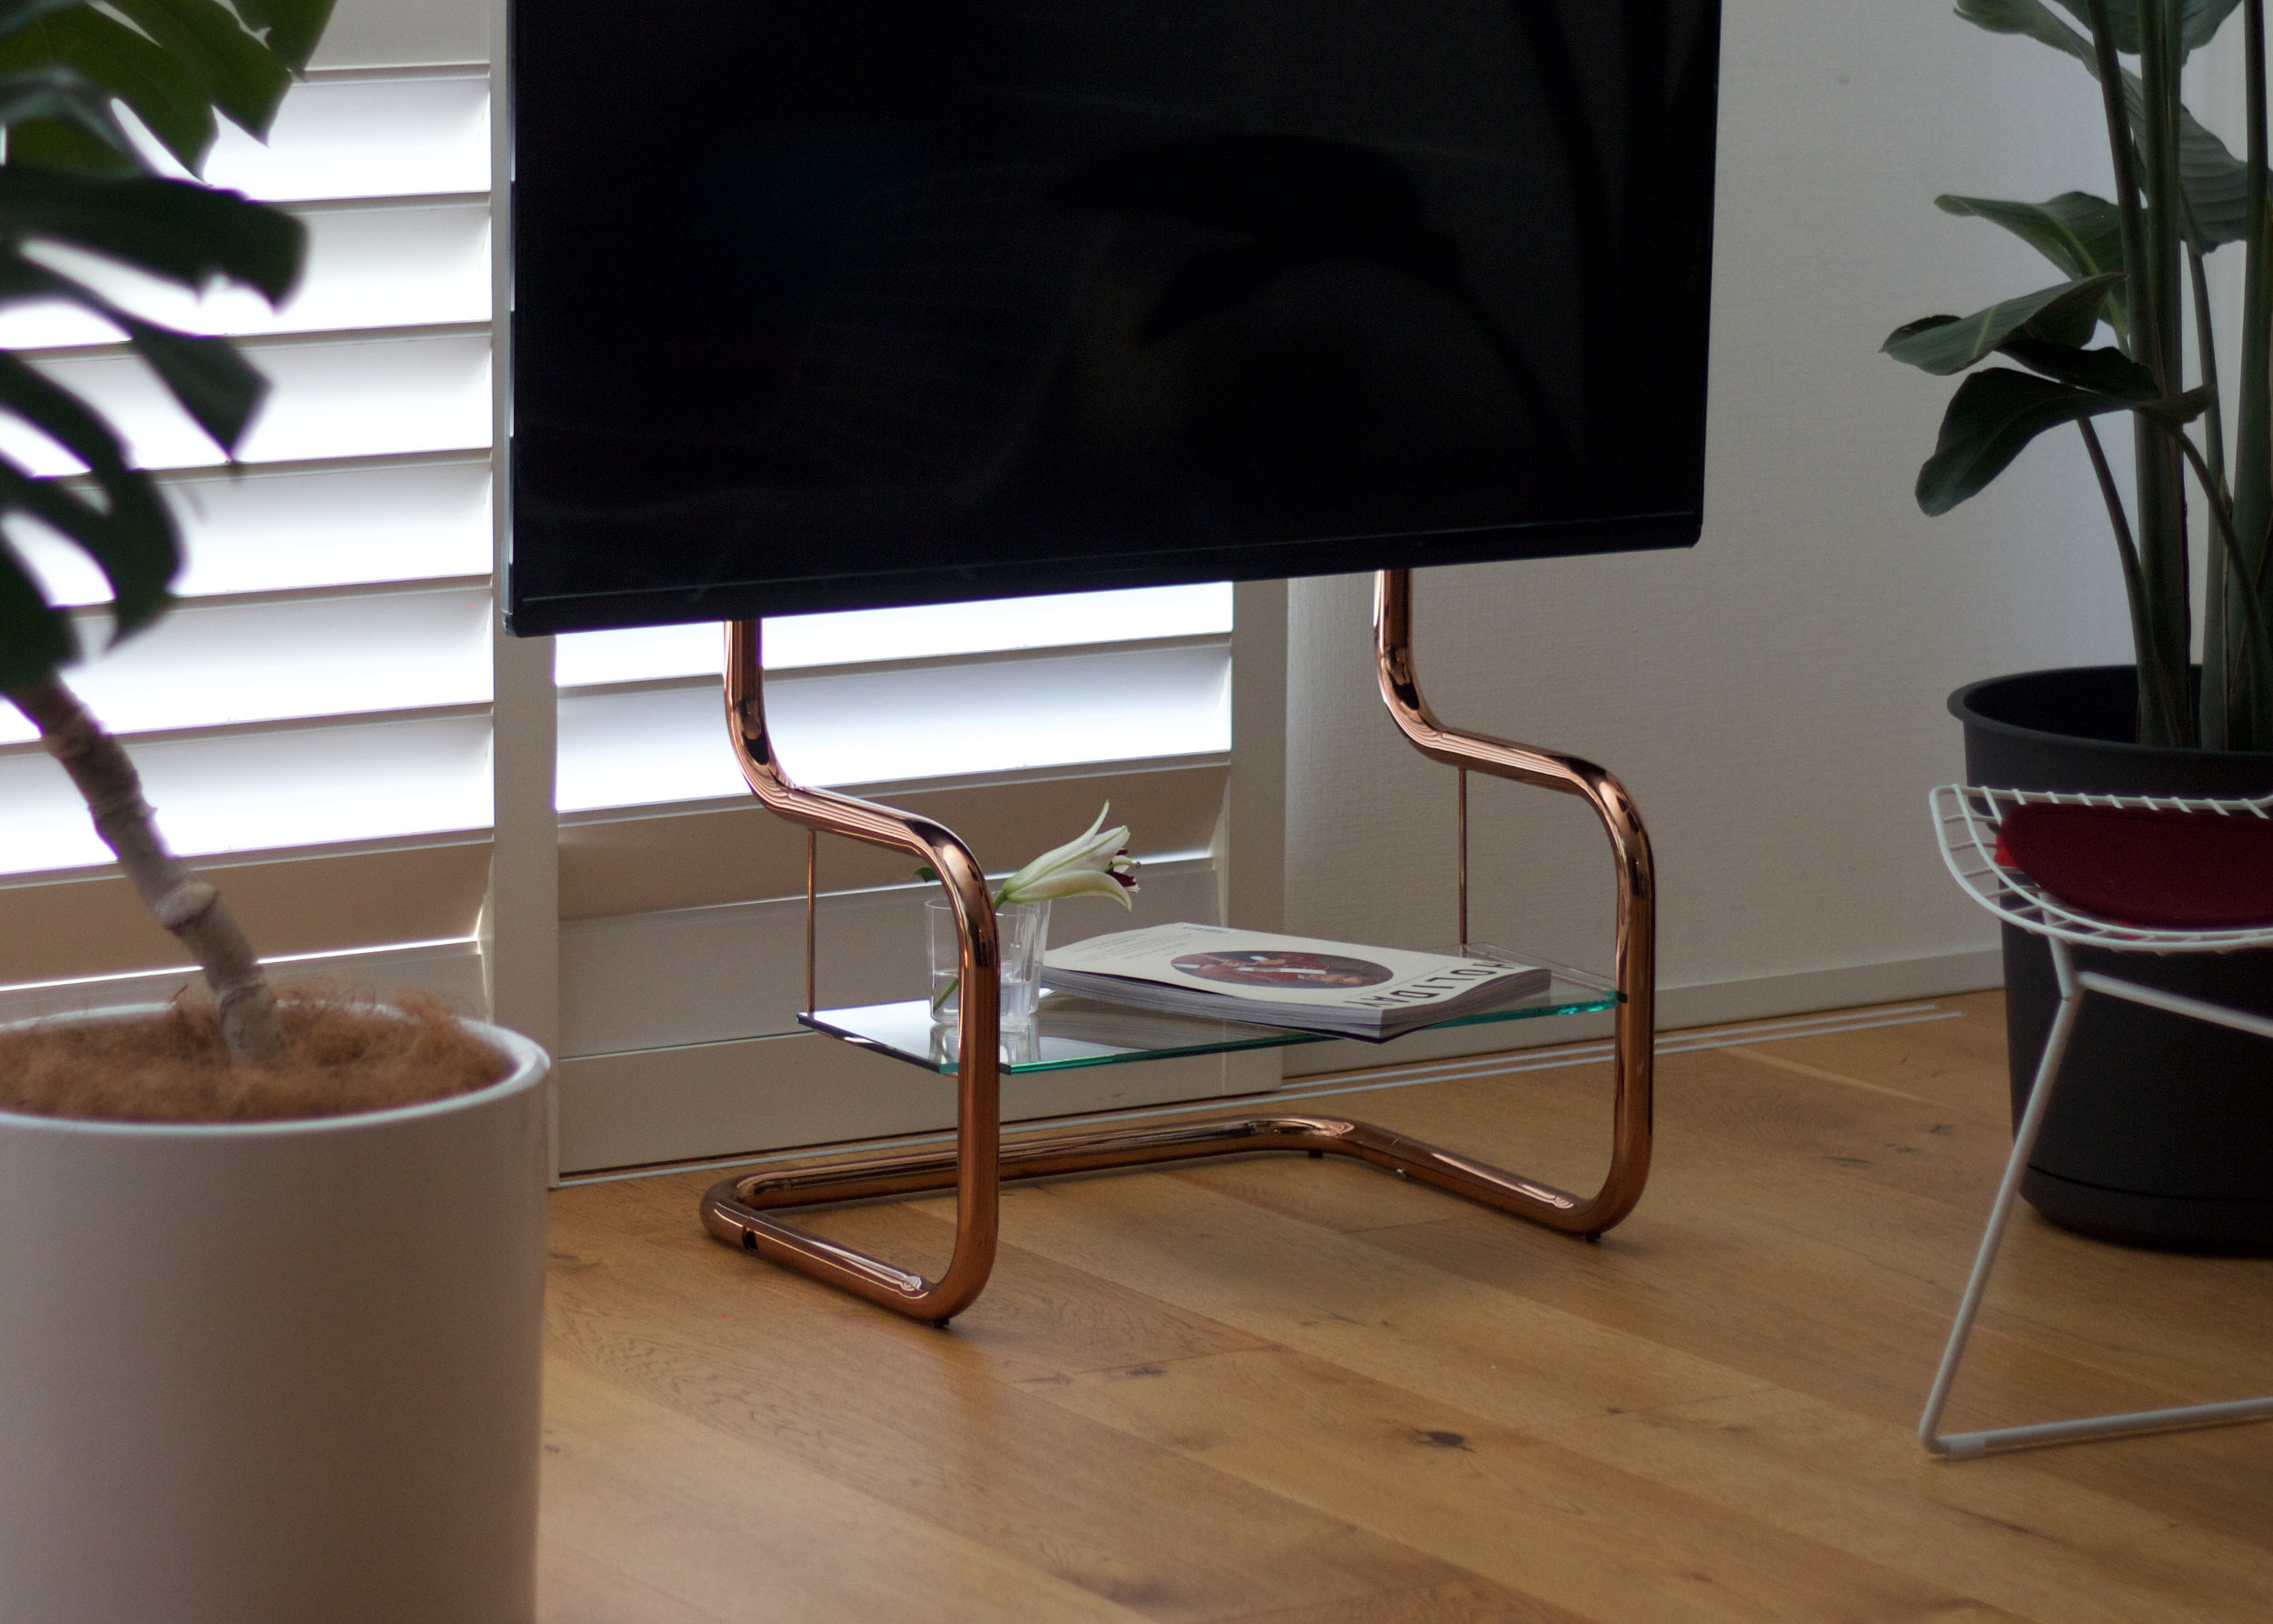 TV stand design simple modern copper pipe